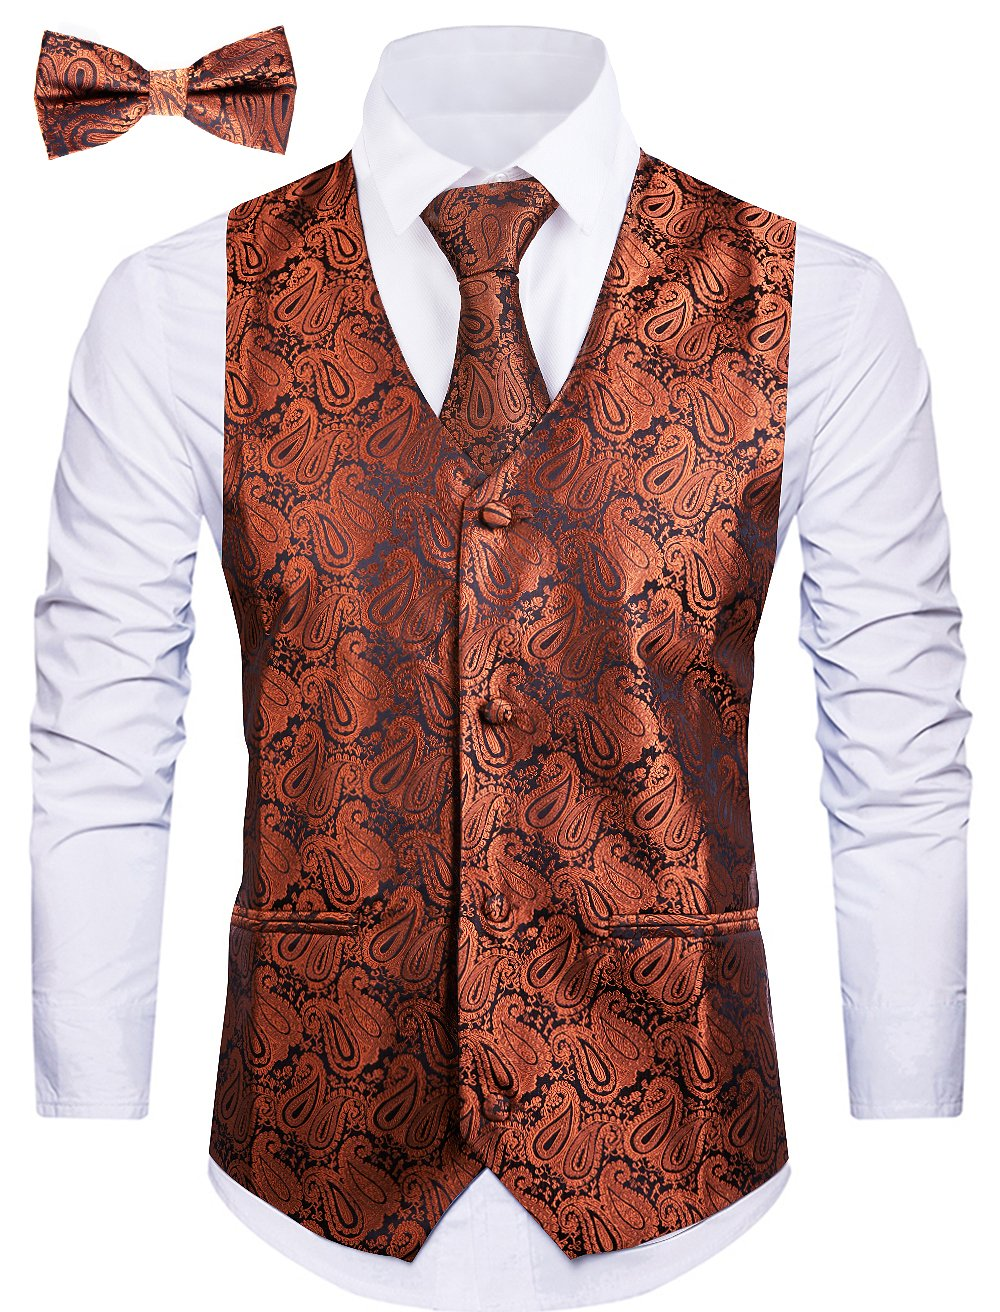 Cyparissus 3pc Paisley Vest for Men with Neck Tie and Bow Tie Set for Suit Tuxedo (XXL, Coffee)